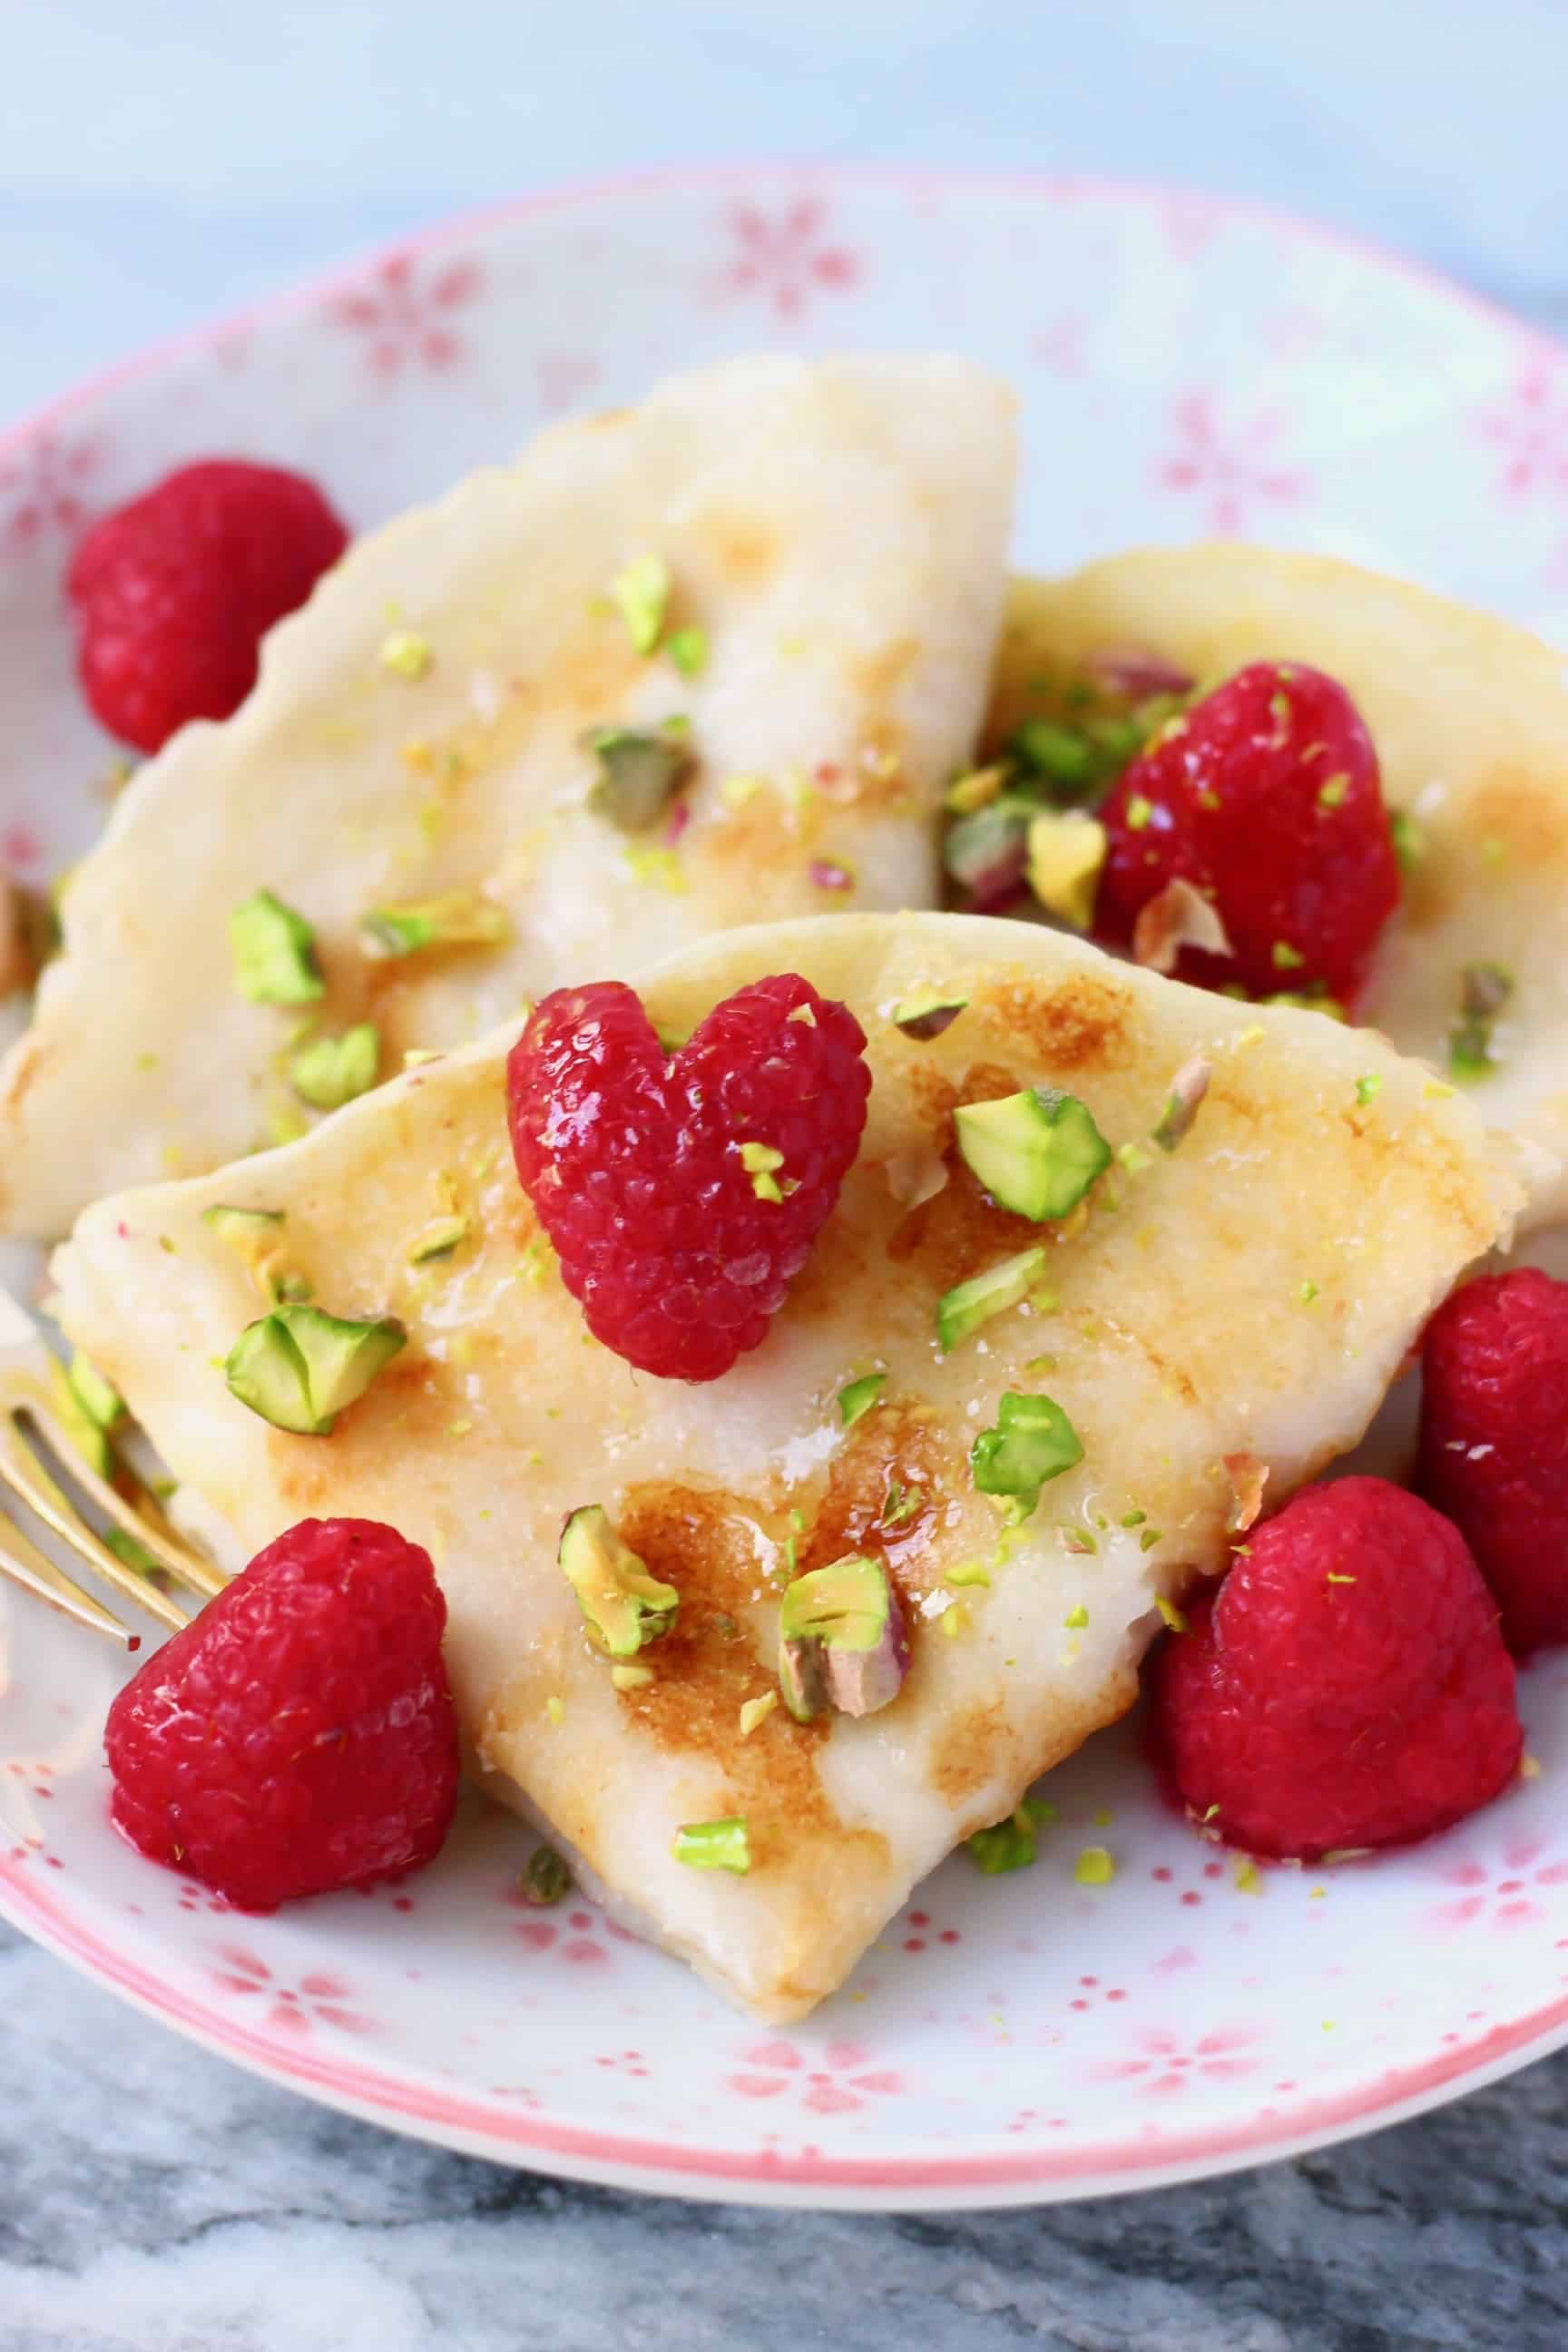 Three folded gluten-free vegan crepes on a white plate with pink flowers decorated with fresh raspberries and chopped pistachios with a gold fork against a marble background